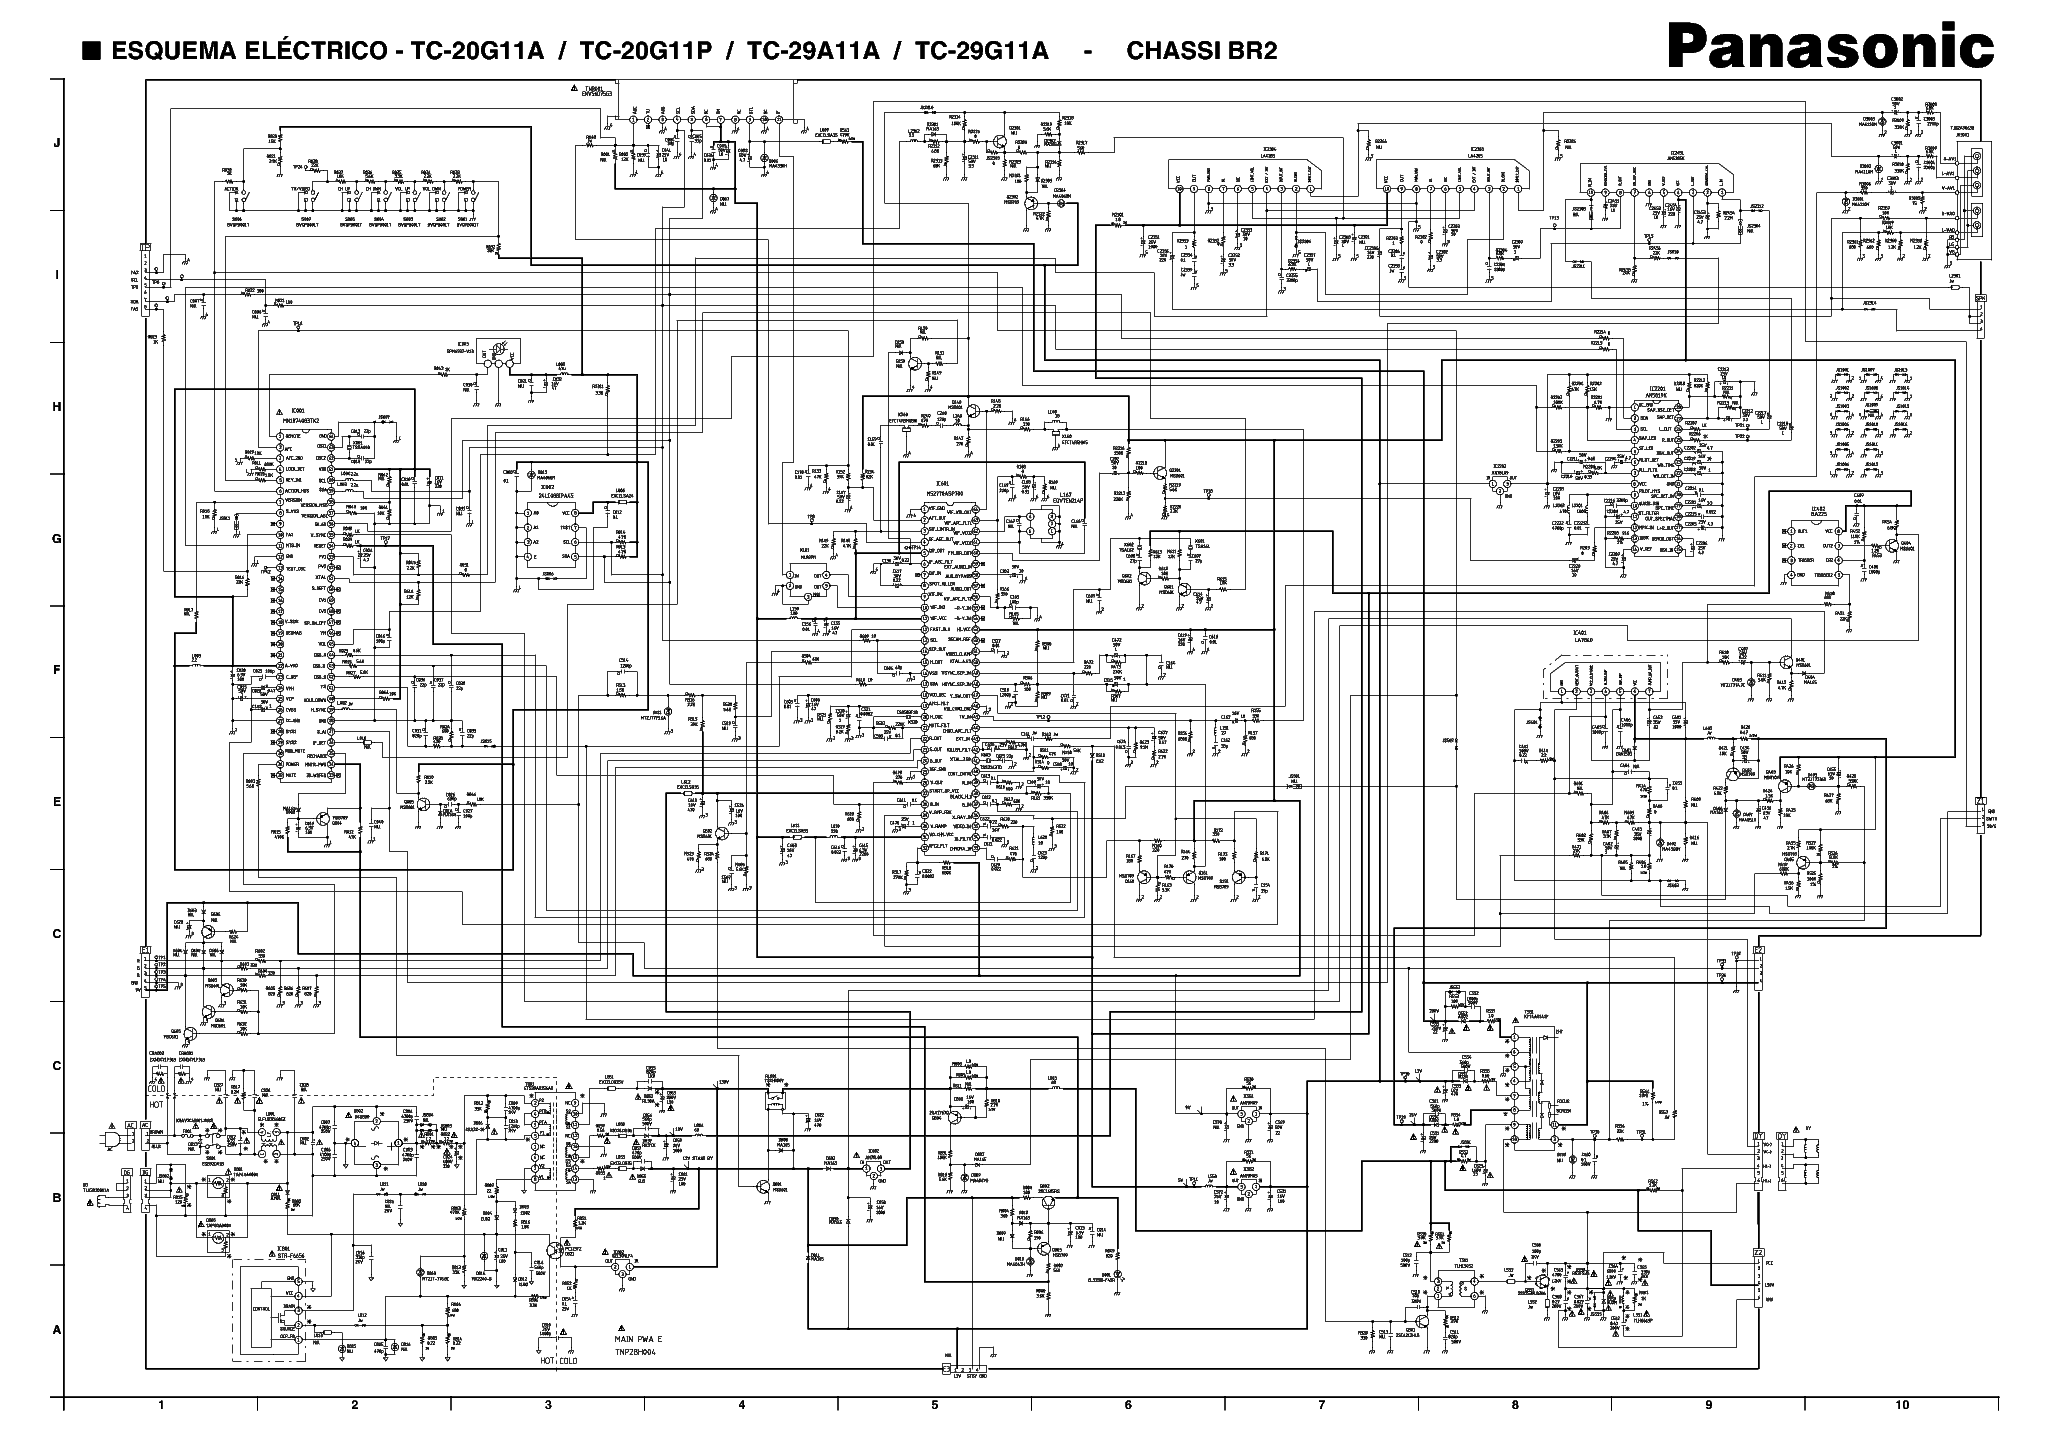 Panasonic Tv Wiring Diagram Online Manuual Of Toyota Camry Free Download Schematic Diagrams Img Rh 2 Andreas Bolz De Radio Circuit